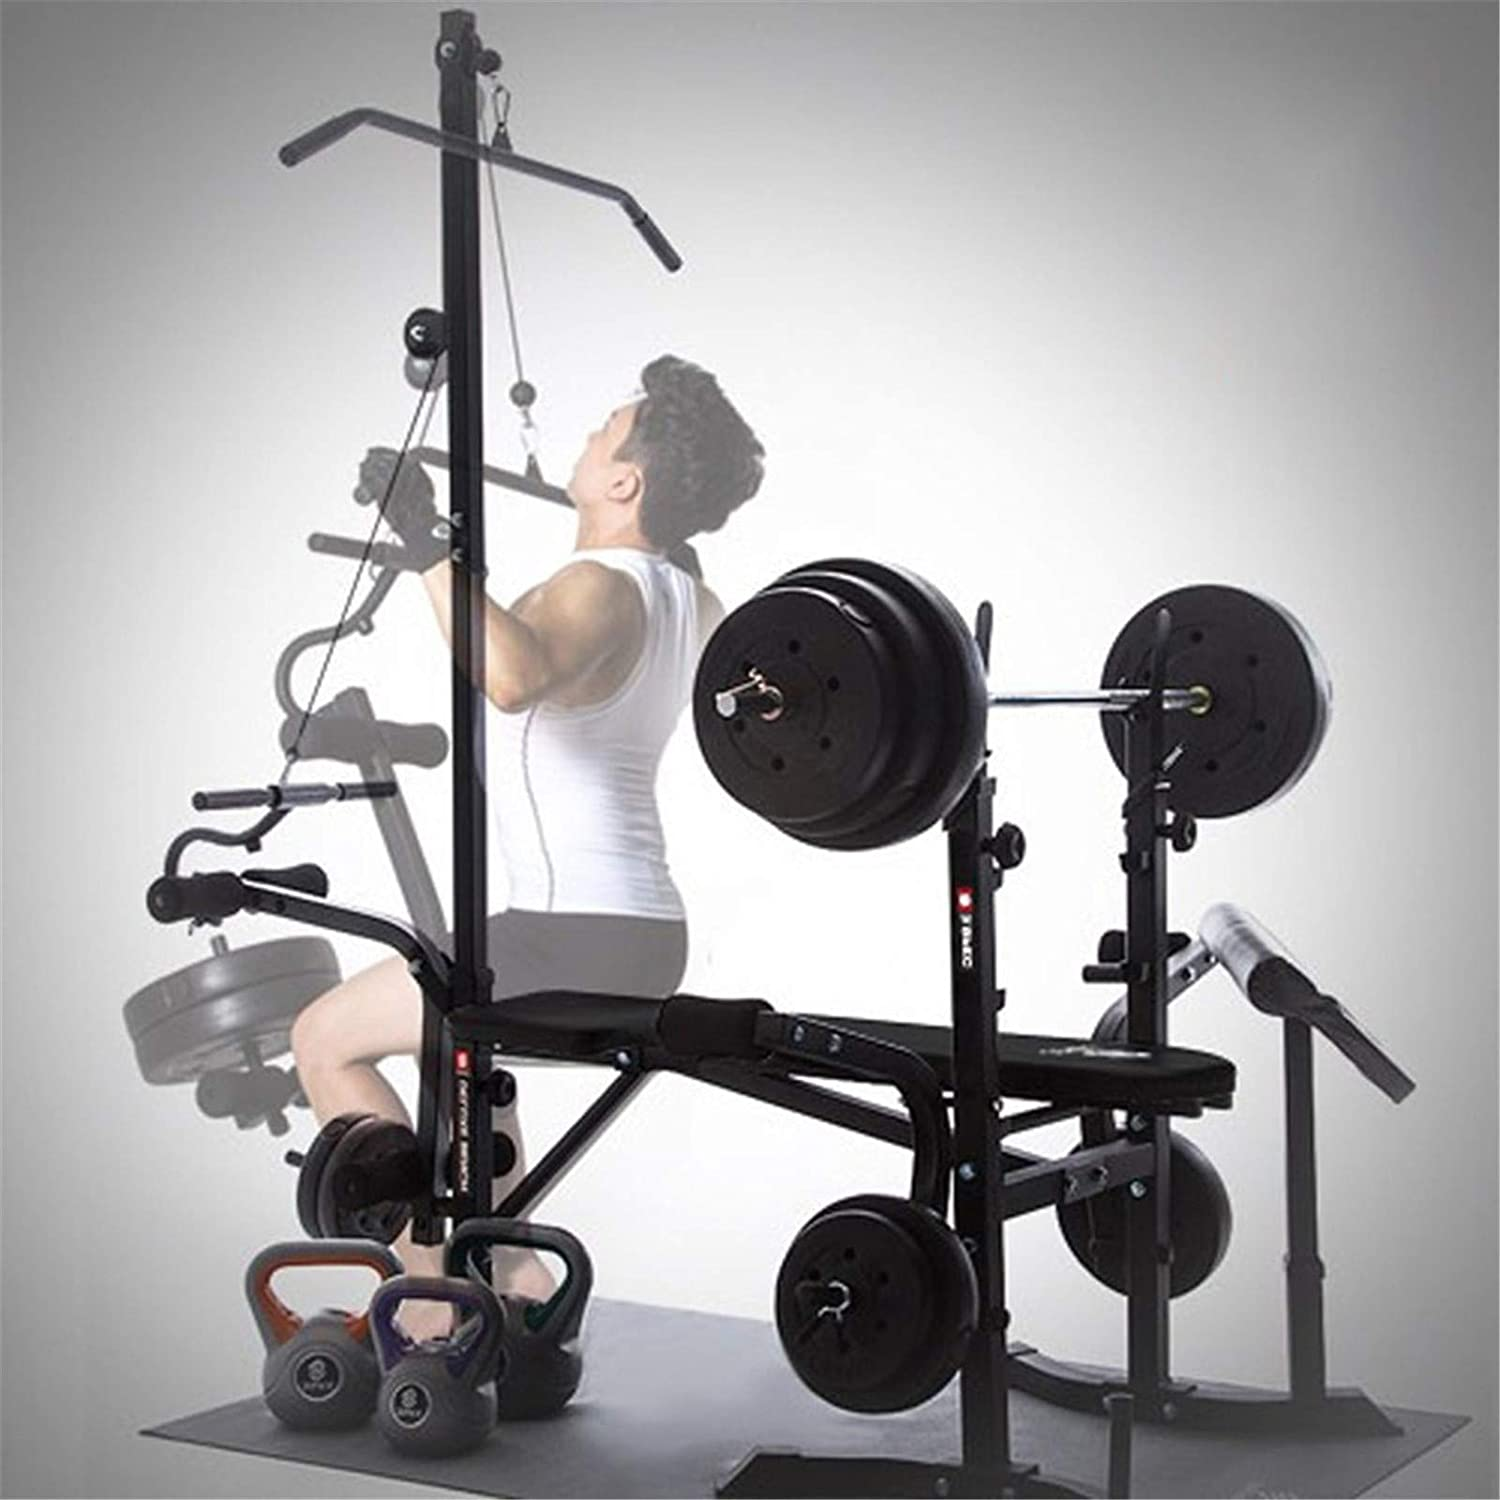 Adjustable Weight Benche Set Multifunctional Weight-Lifting Bed Weight-Lifting Machine Fitness Equipment TANGNADE Olympic Weight Benches